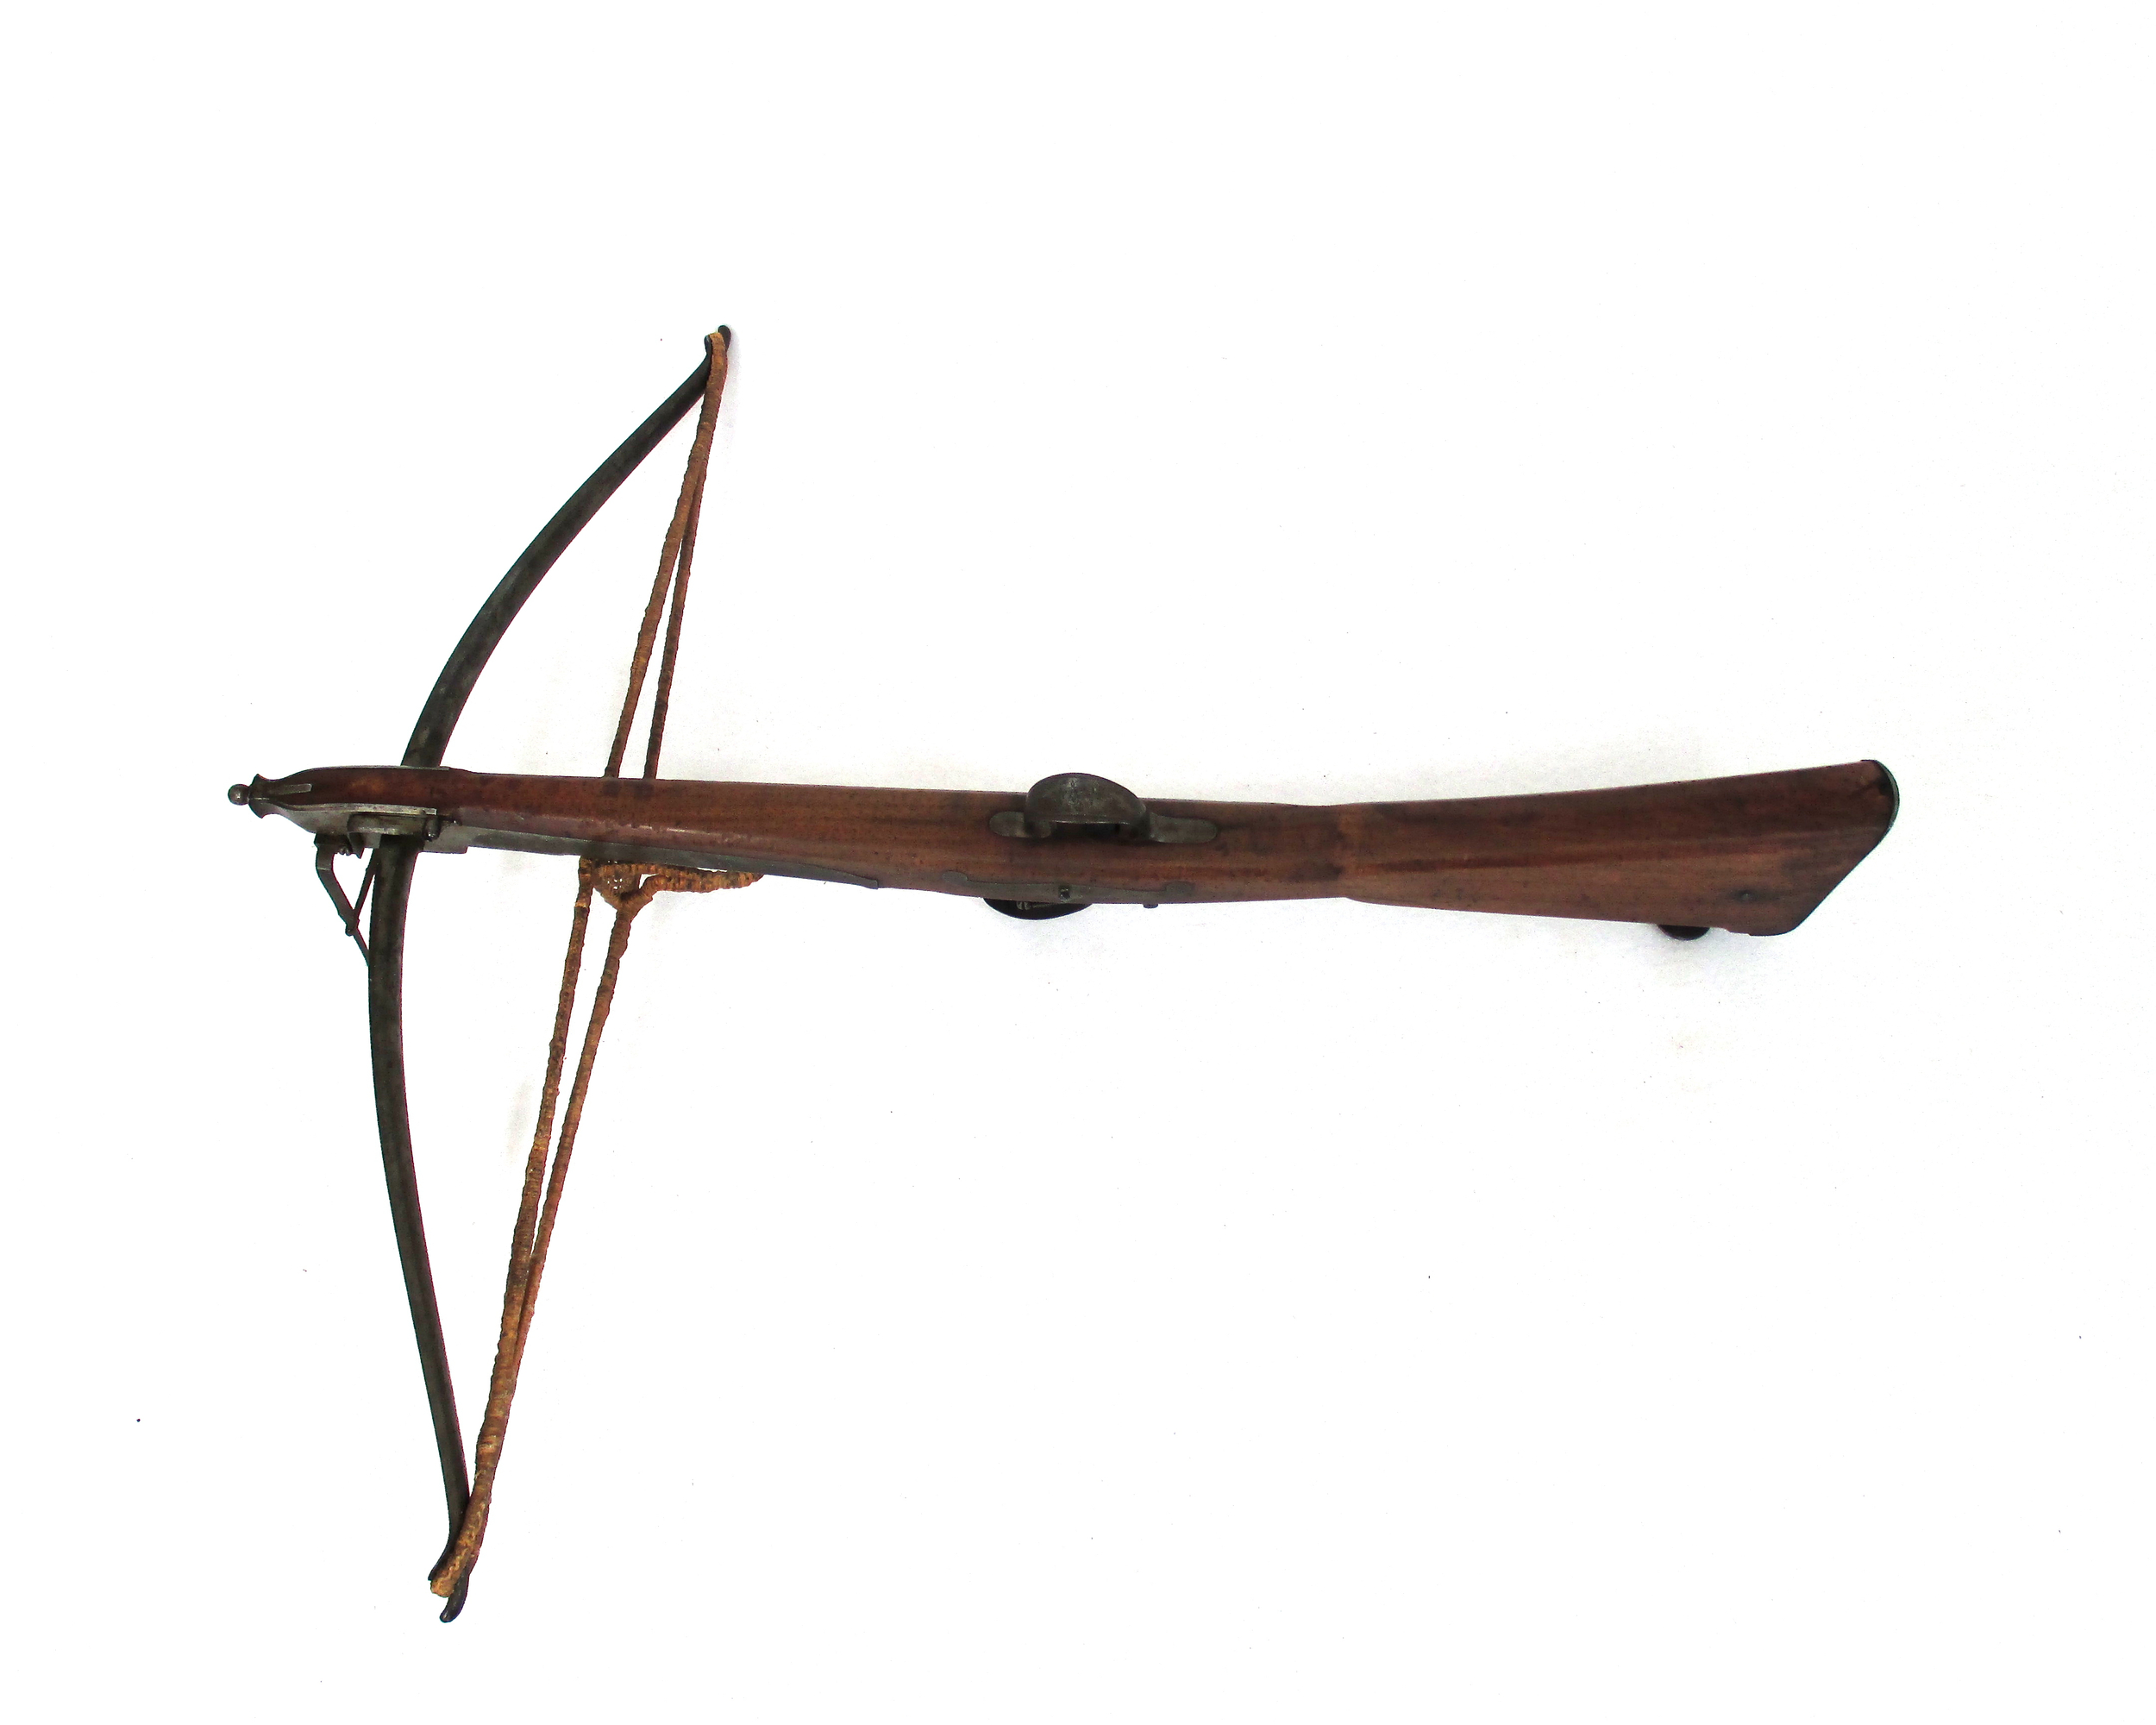 english-stonebow-crossbow-pellet-weapon-barker-gary-friedland-antique-arms-armor6.jpg